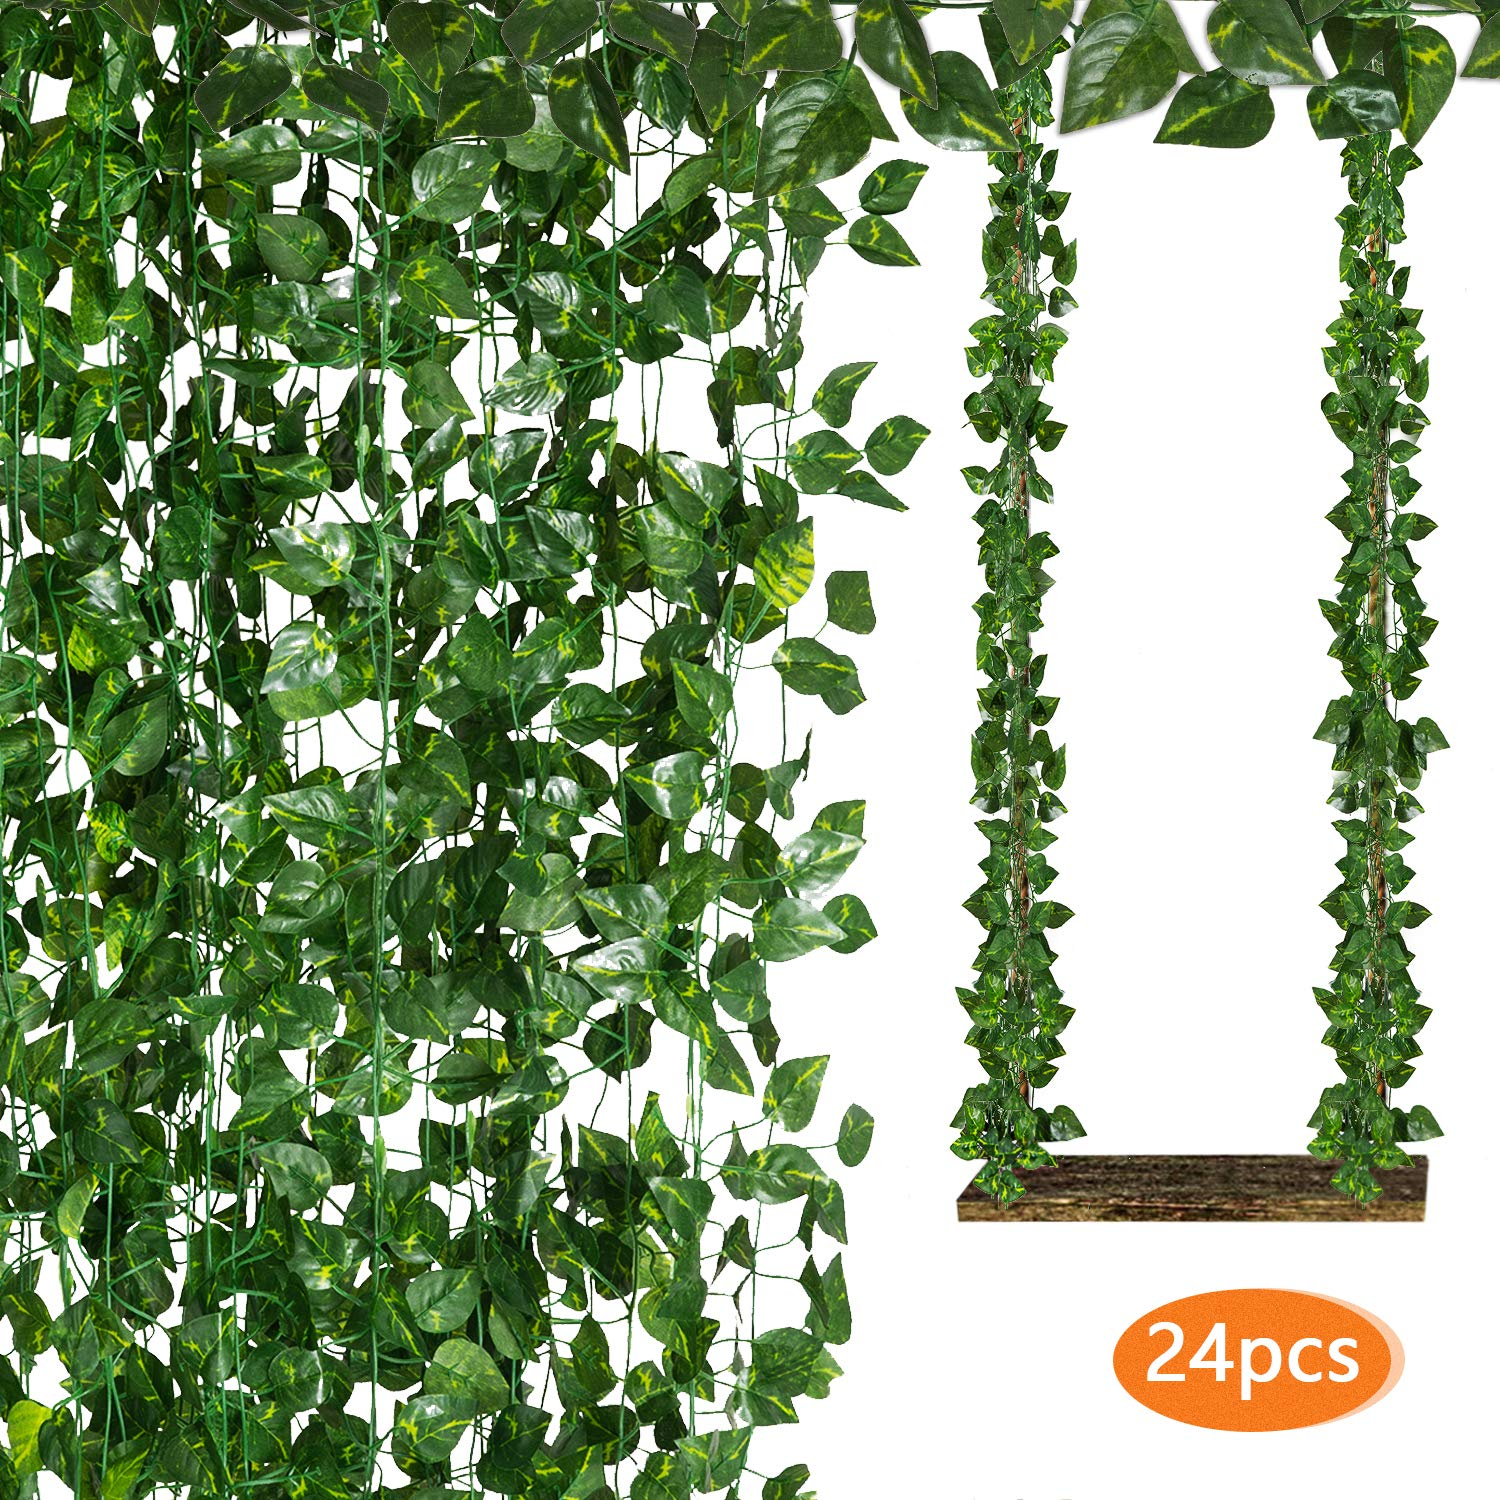 Funny Poop 24 Pack 168 FT Artificial Ivy Leaf Fake Ivy Hanging Greenery Garland Vines for Wedding Decor Party Room Kitchen Balcony Garden Wall Decoration